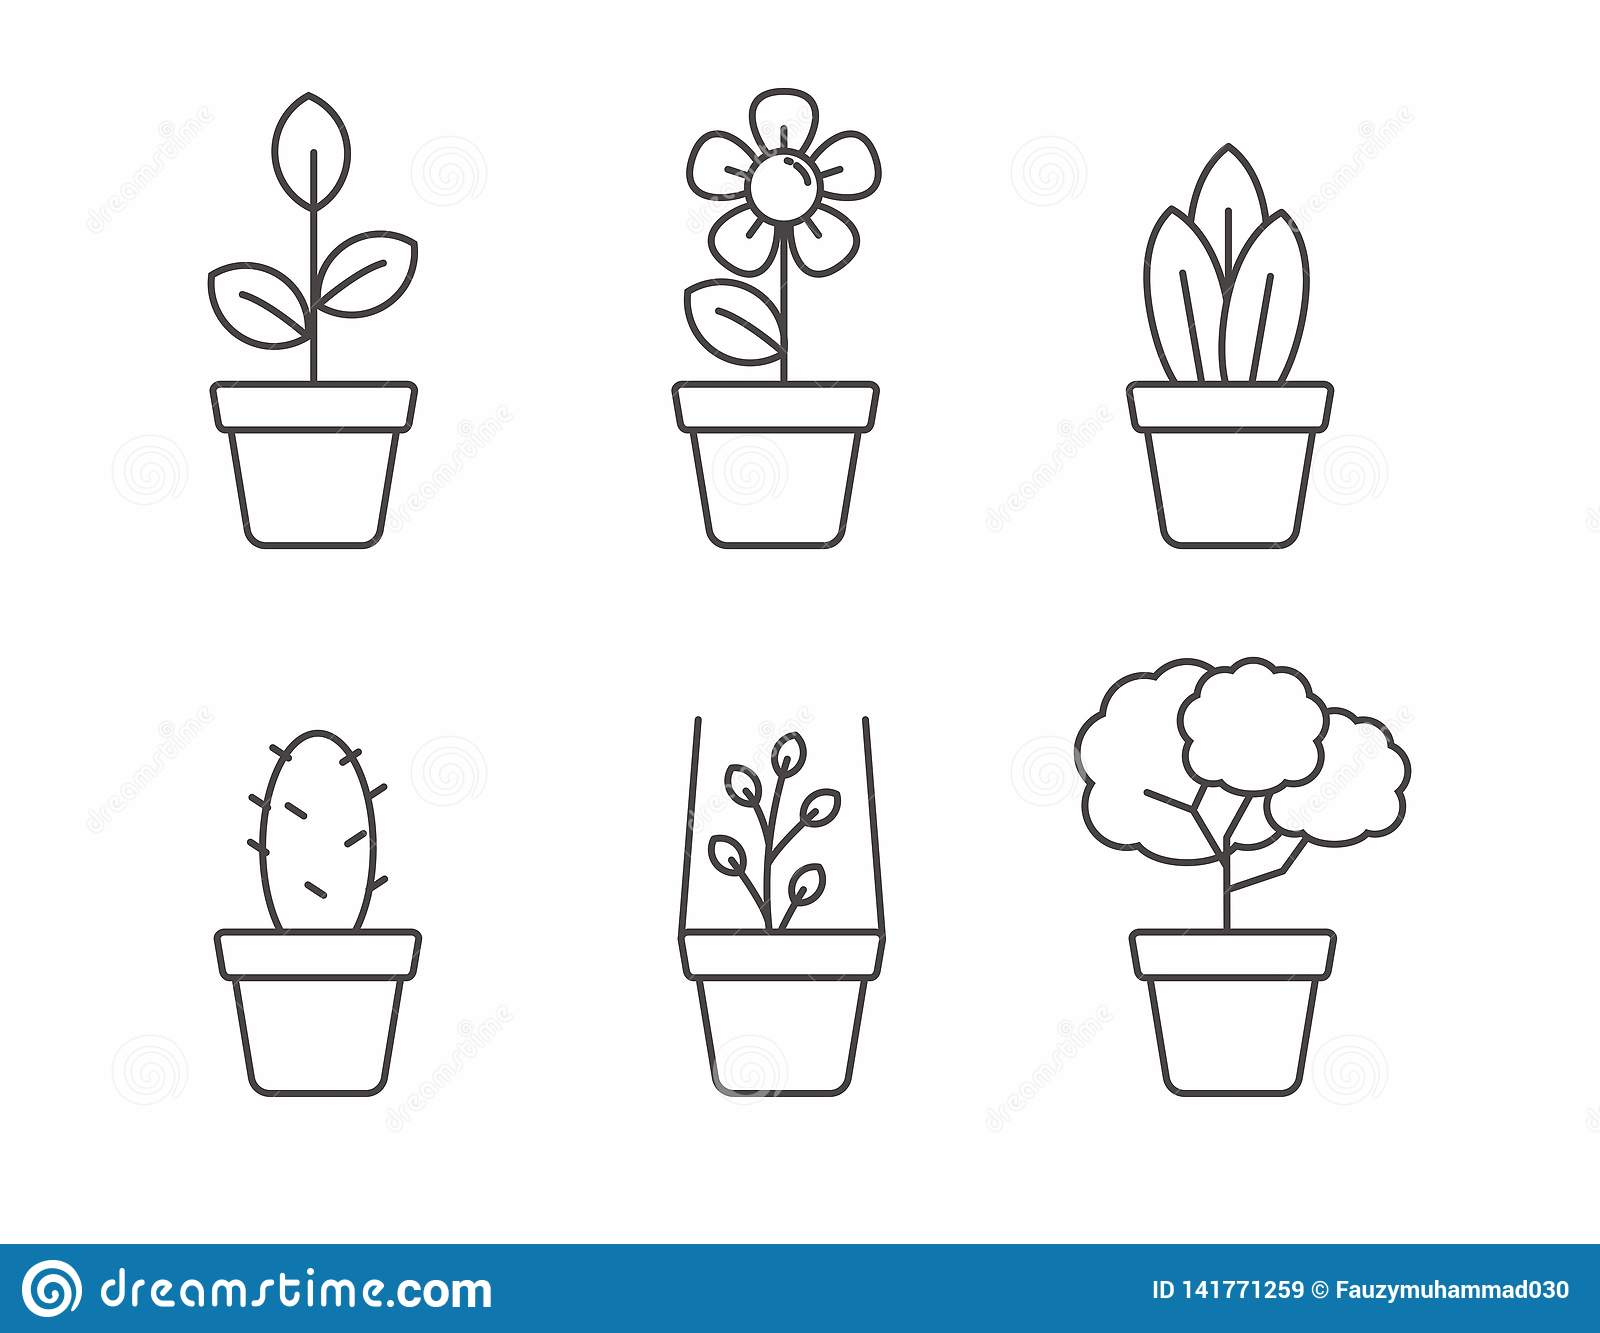 35 Latest Simple Weed Plant Drawing Barnes Family